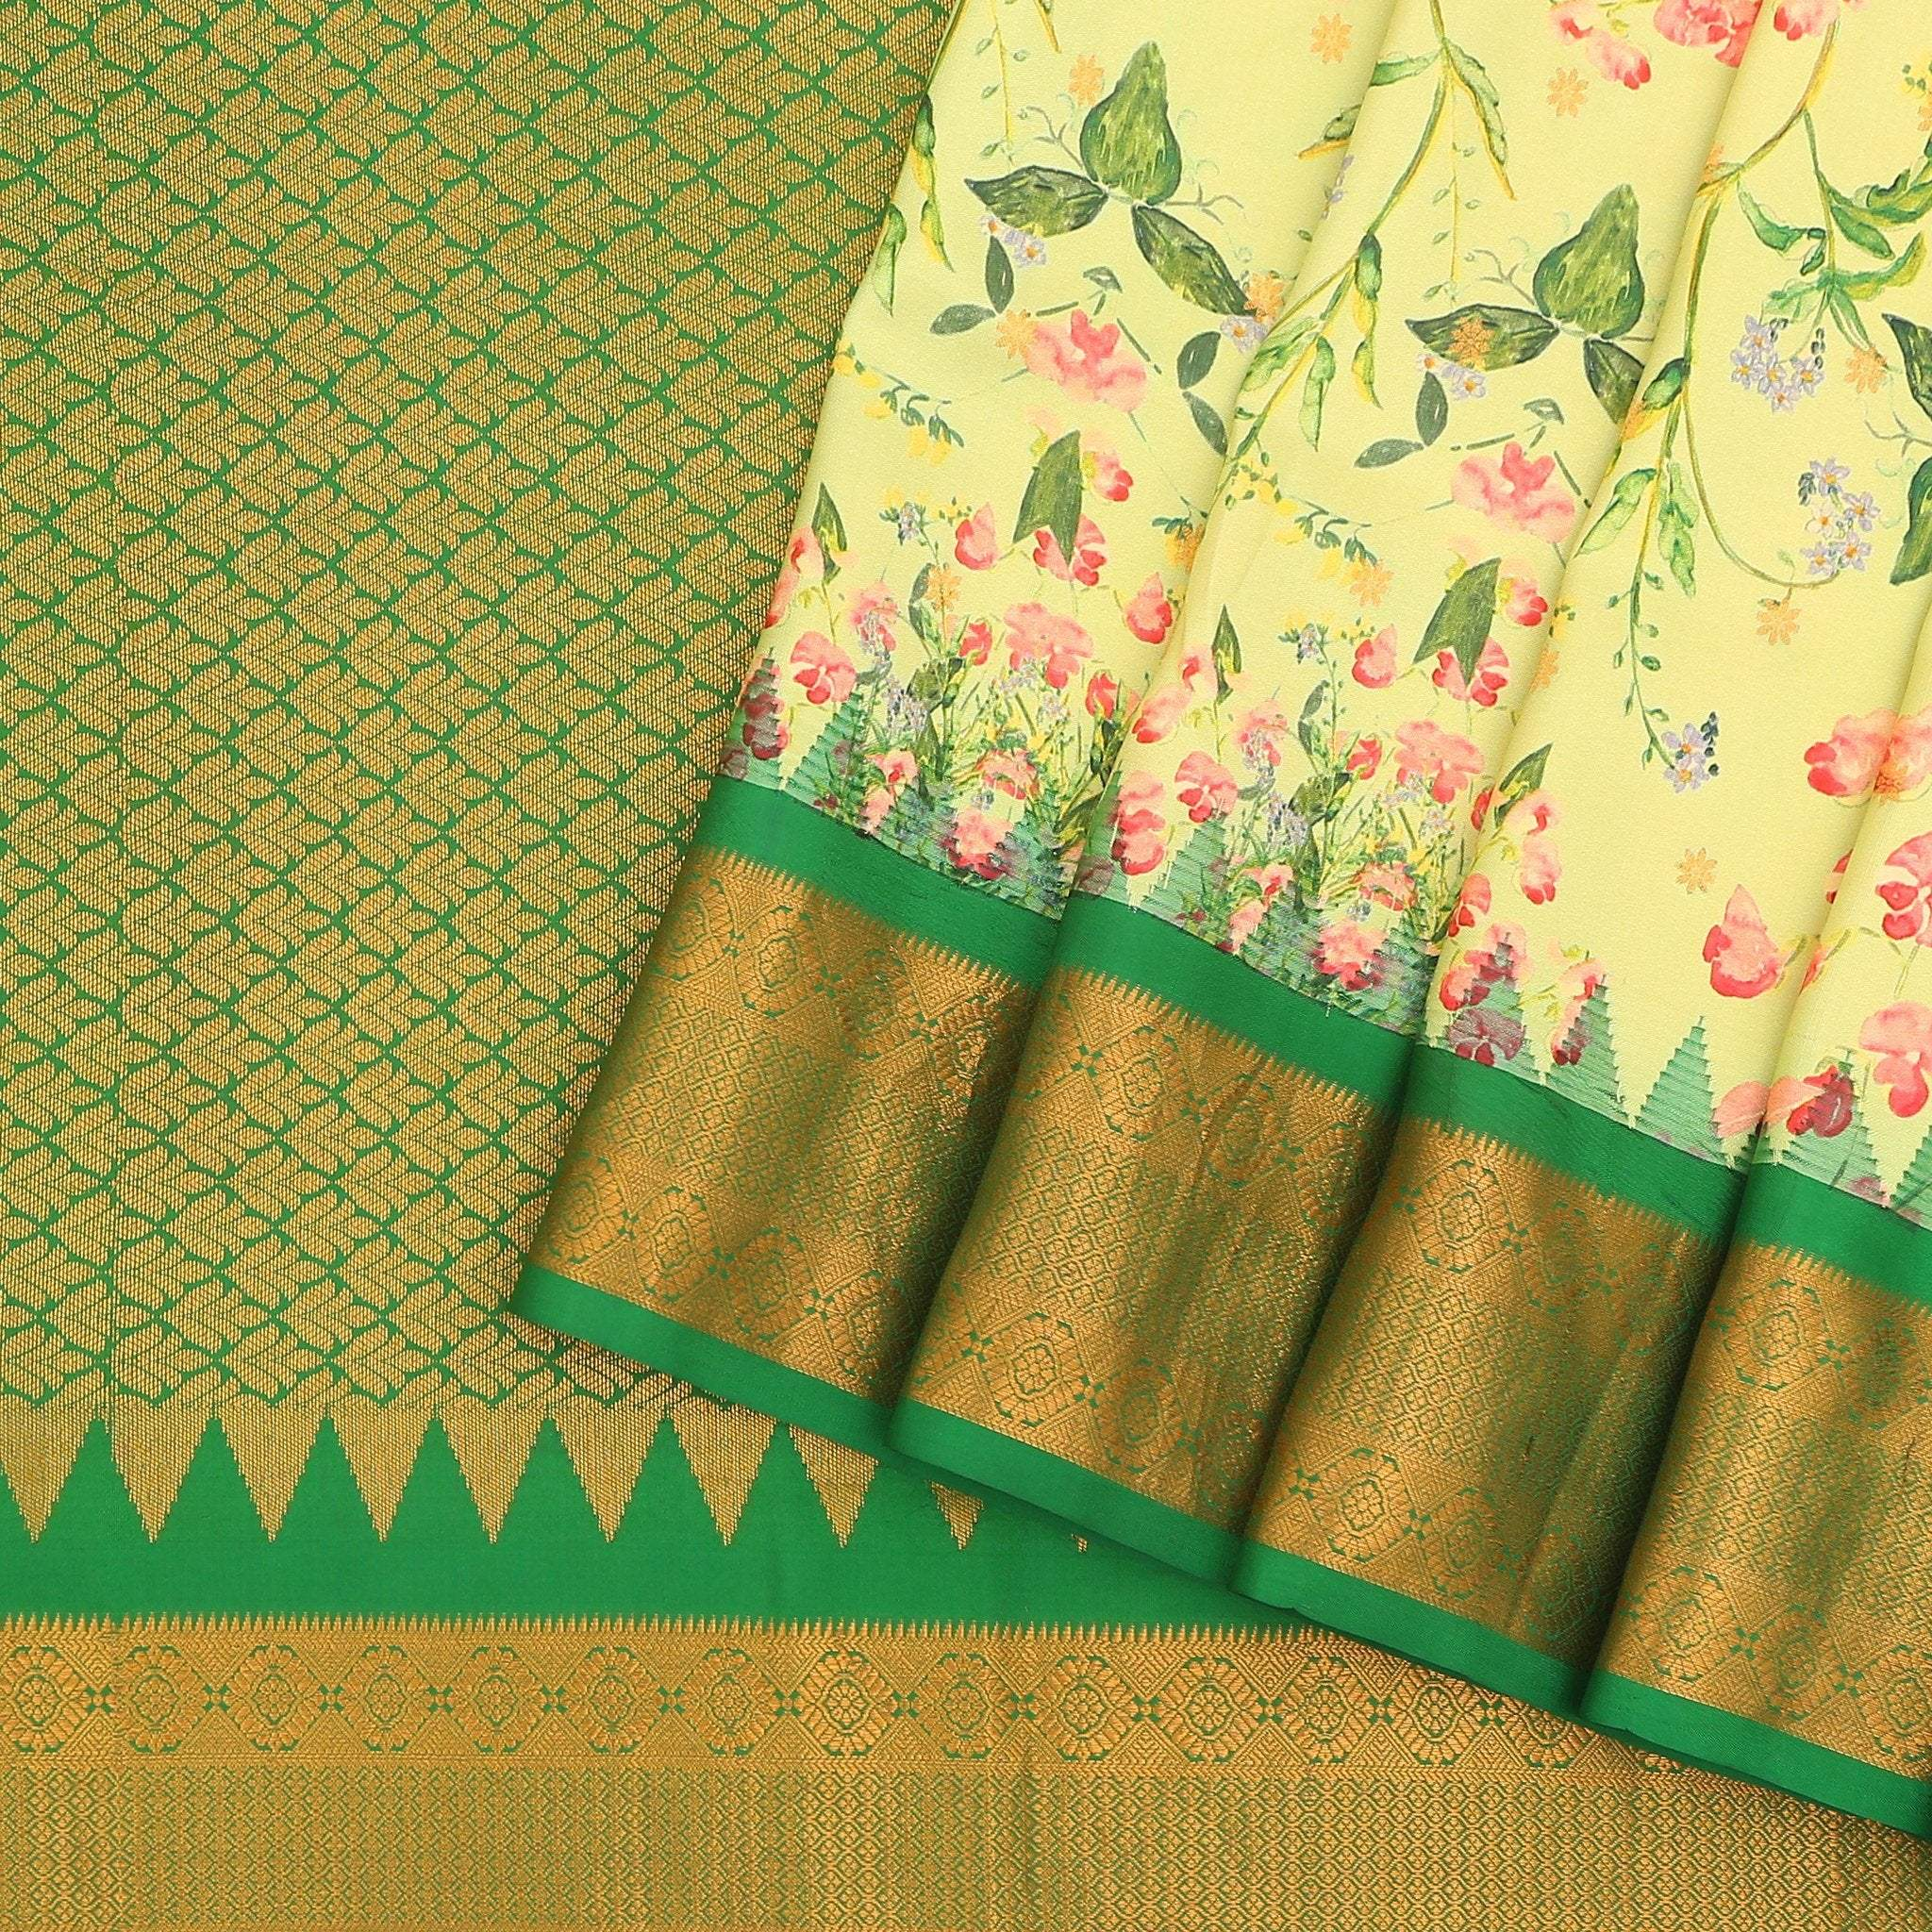 Lemon-Yellow-Dainty-Floral-Printed-Gadwal-Silk-Handloom-Saree